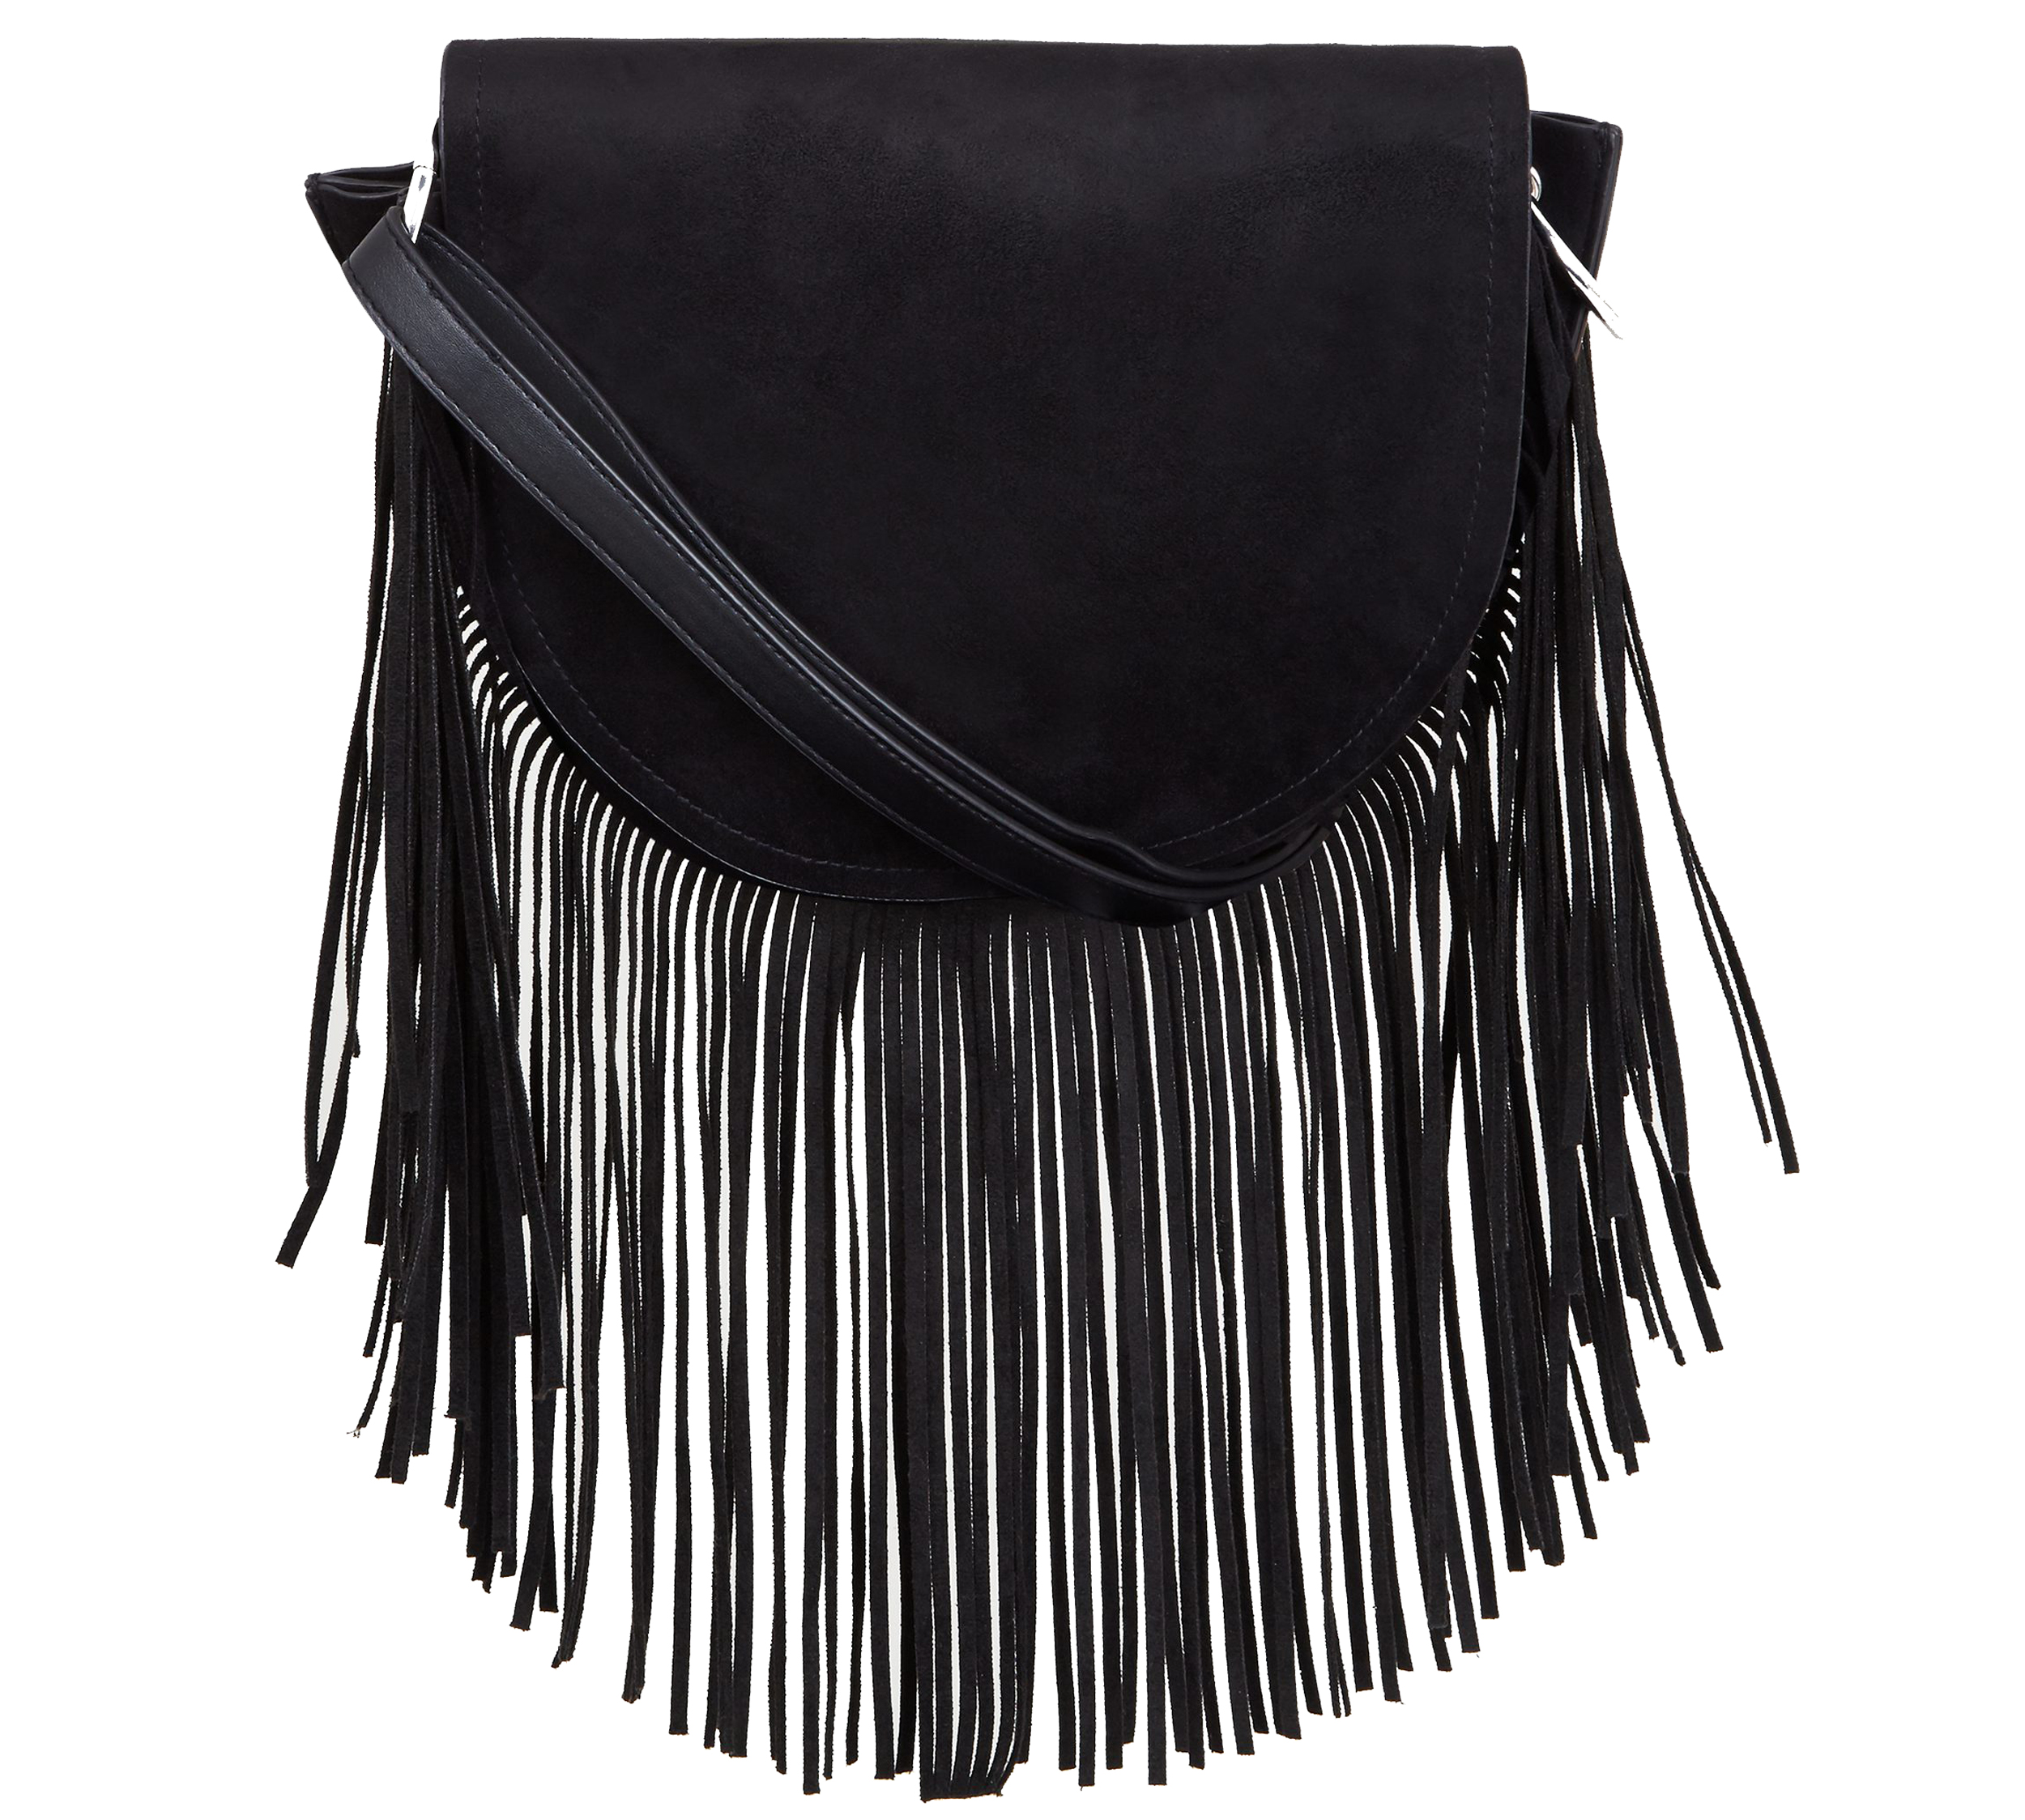 New Look Black Suedette Fringe Cross Body Bag